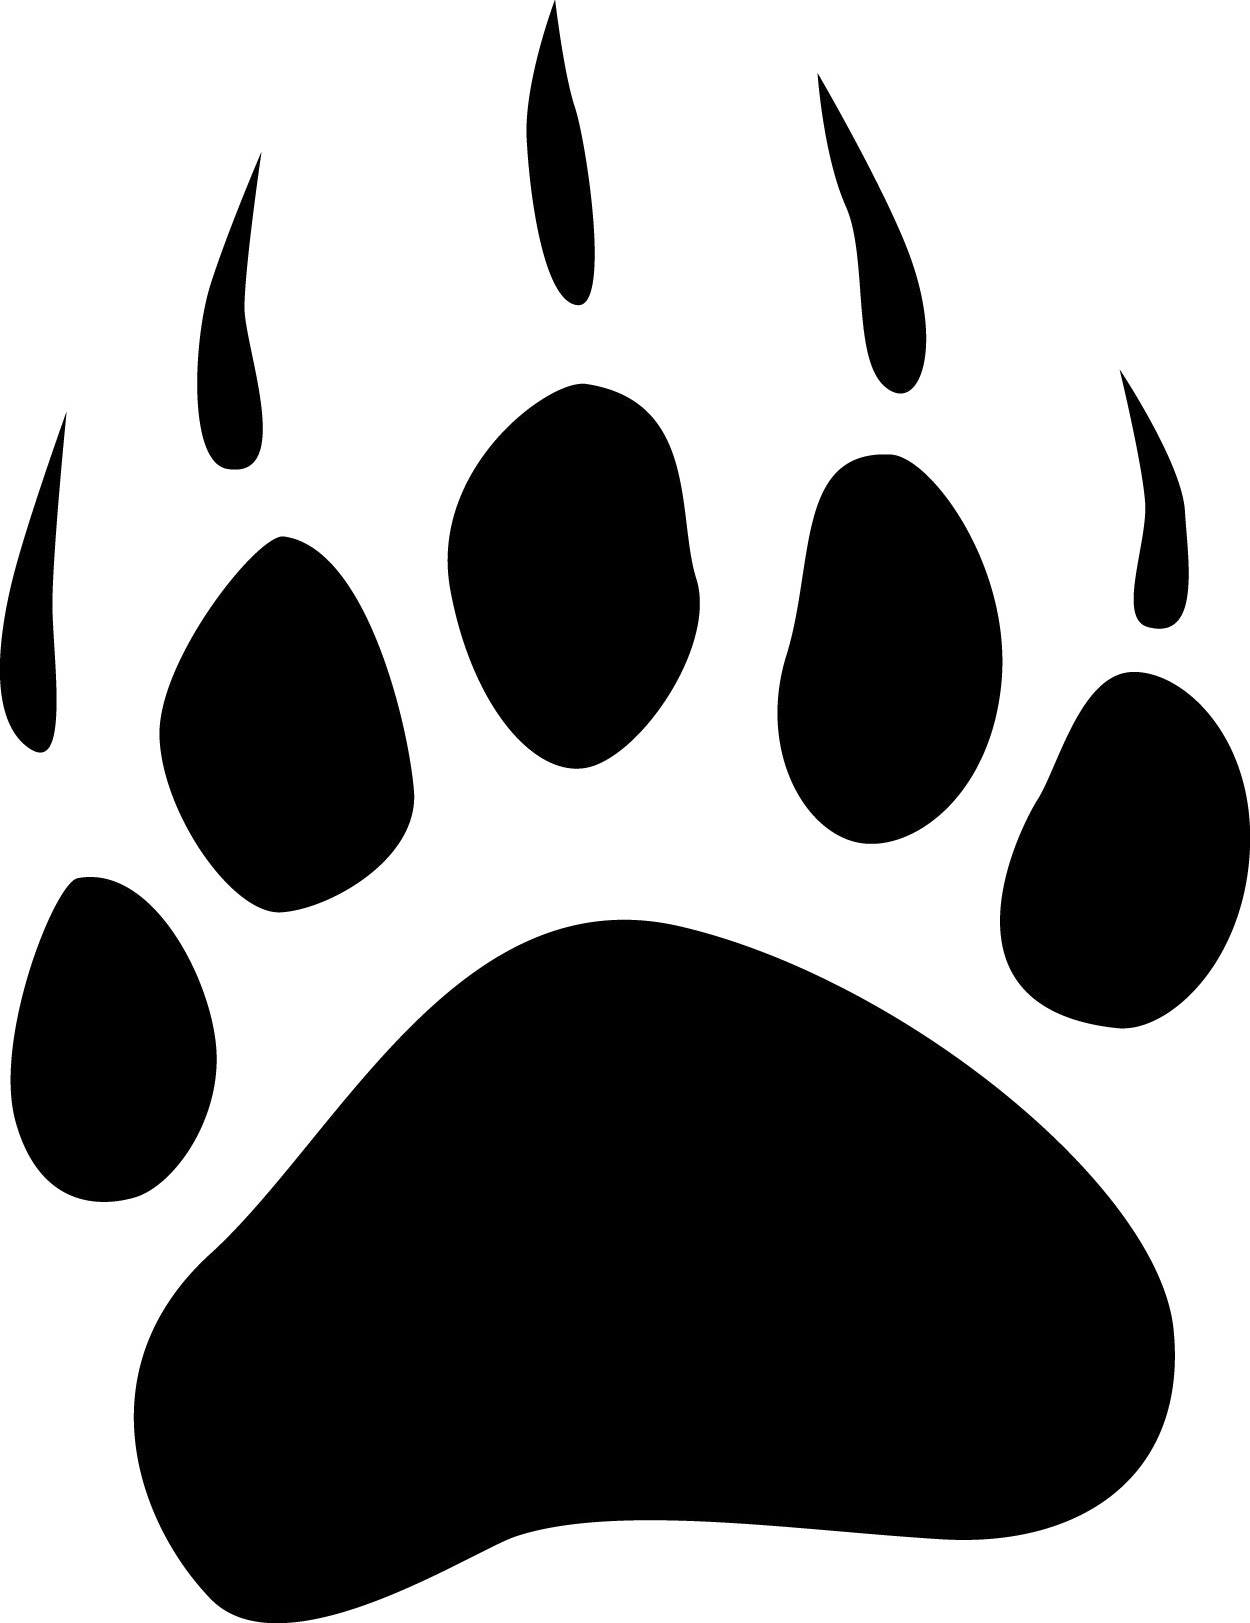 Paw print decals for wall